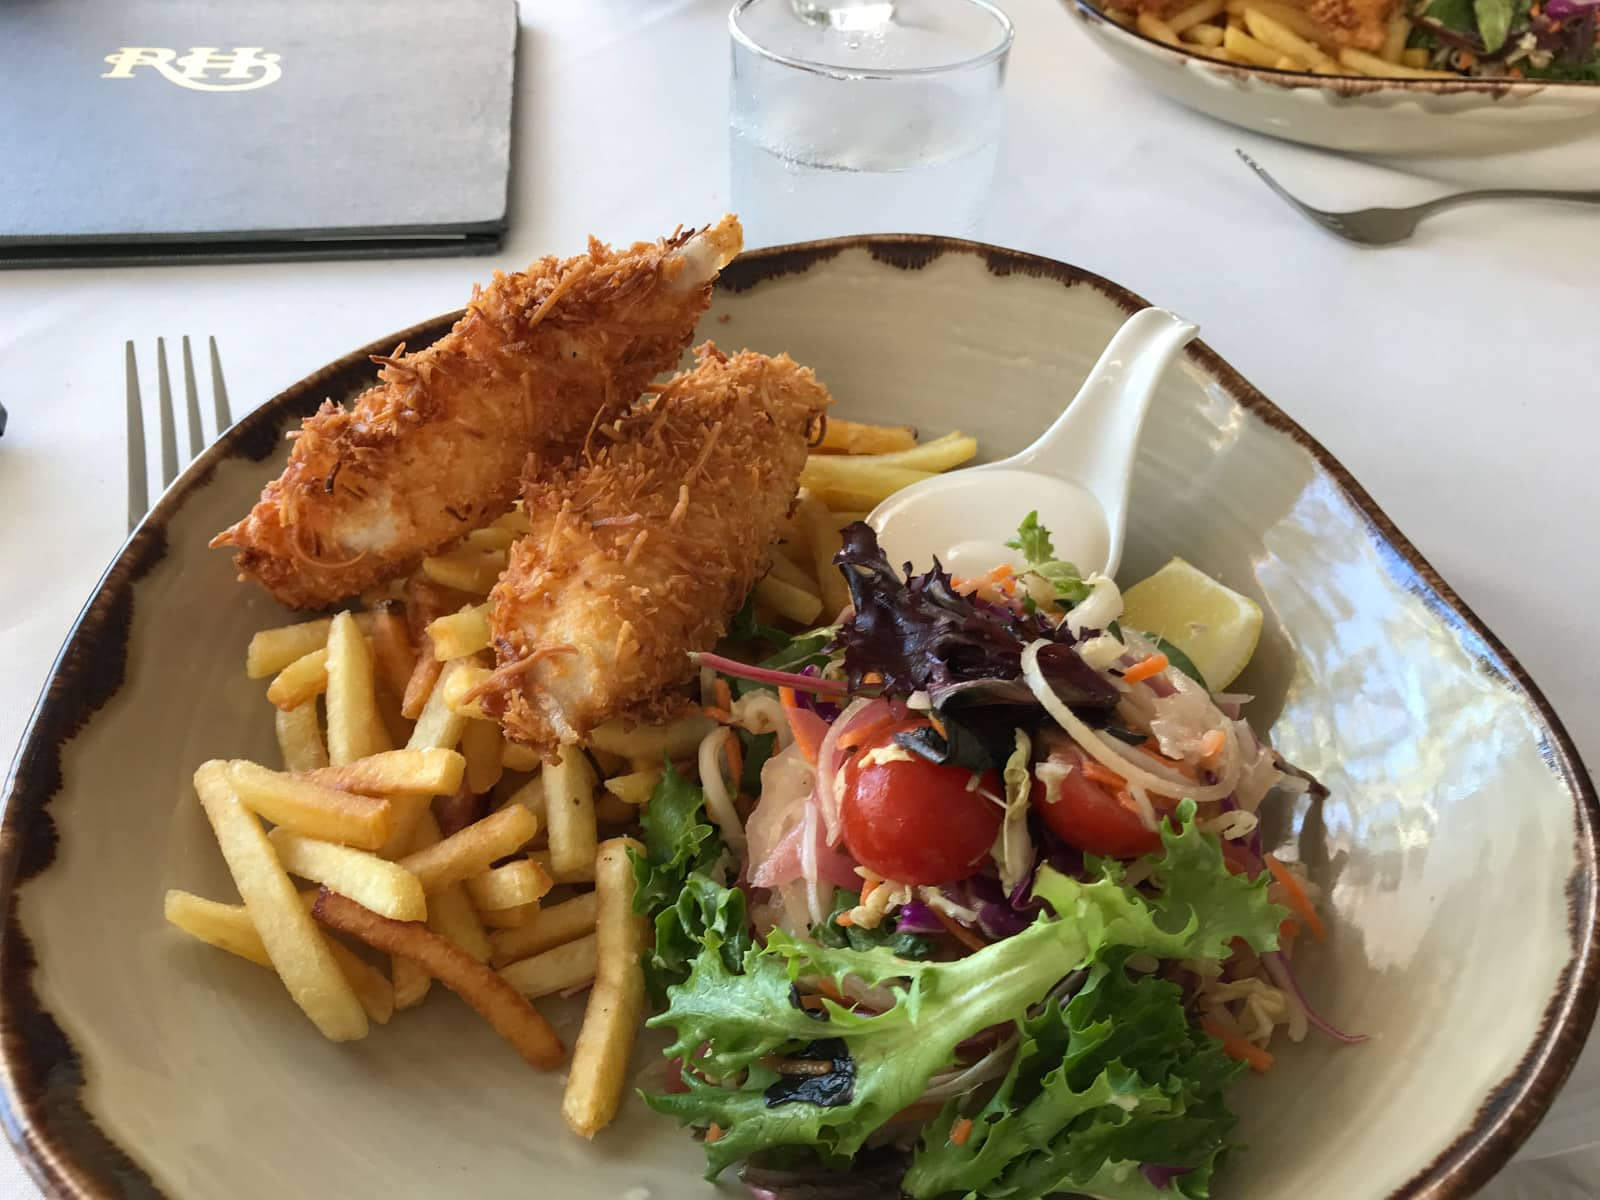 An irregular shaped bowl with some fries, garden salad and battered fish.